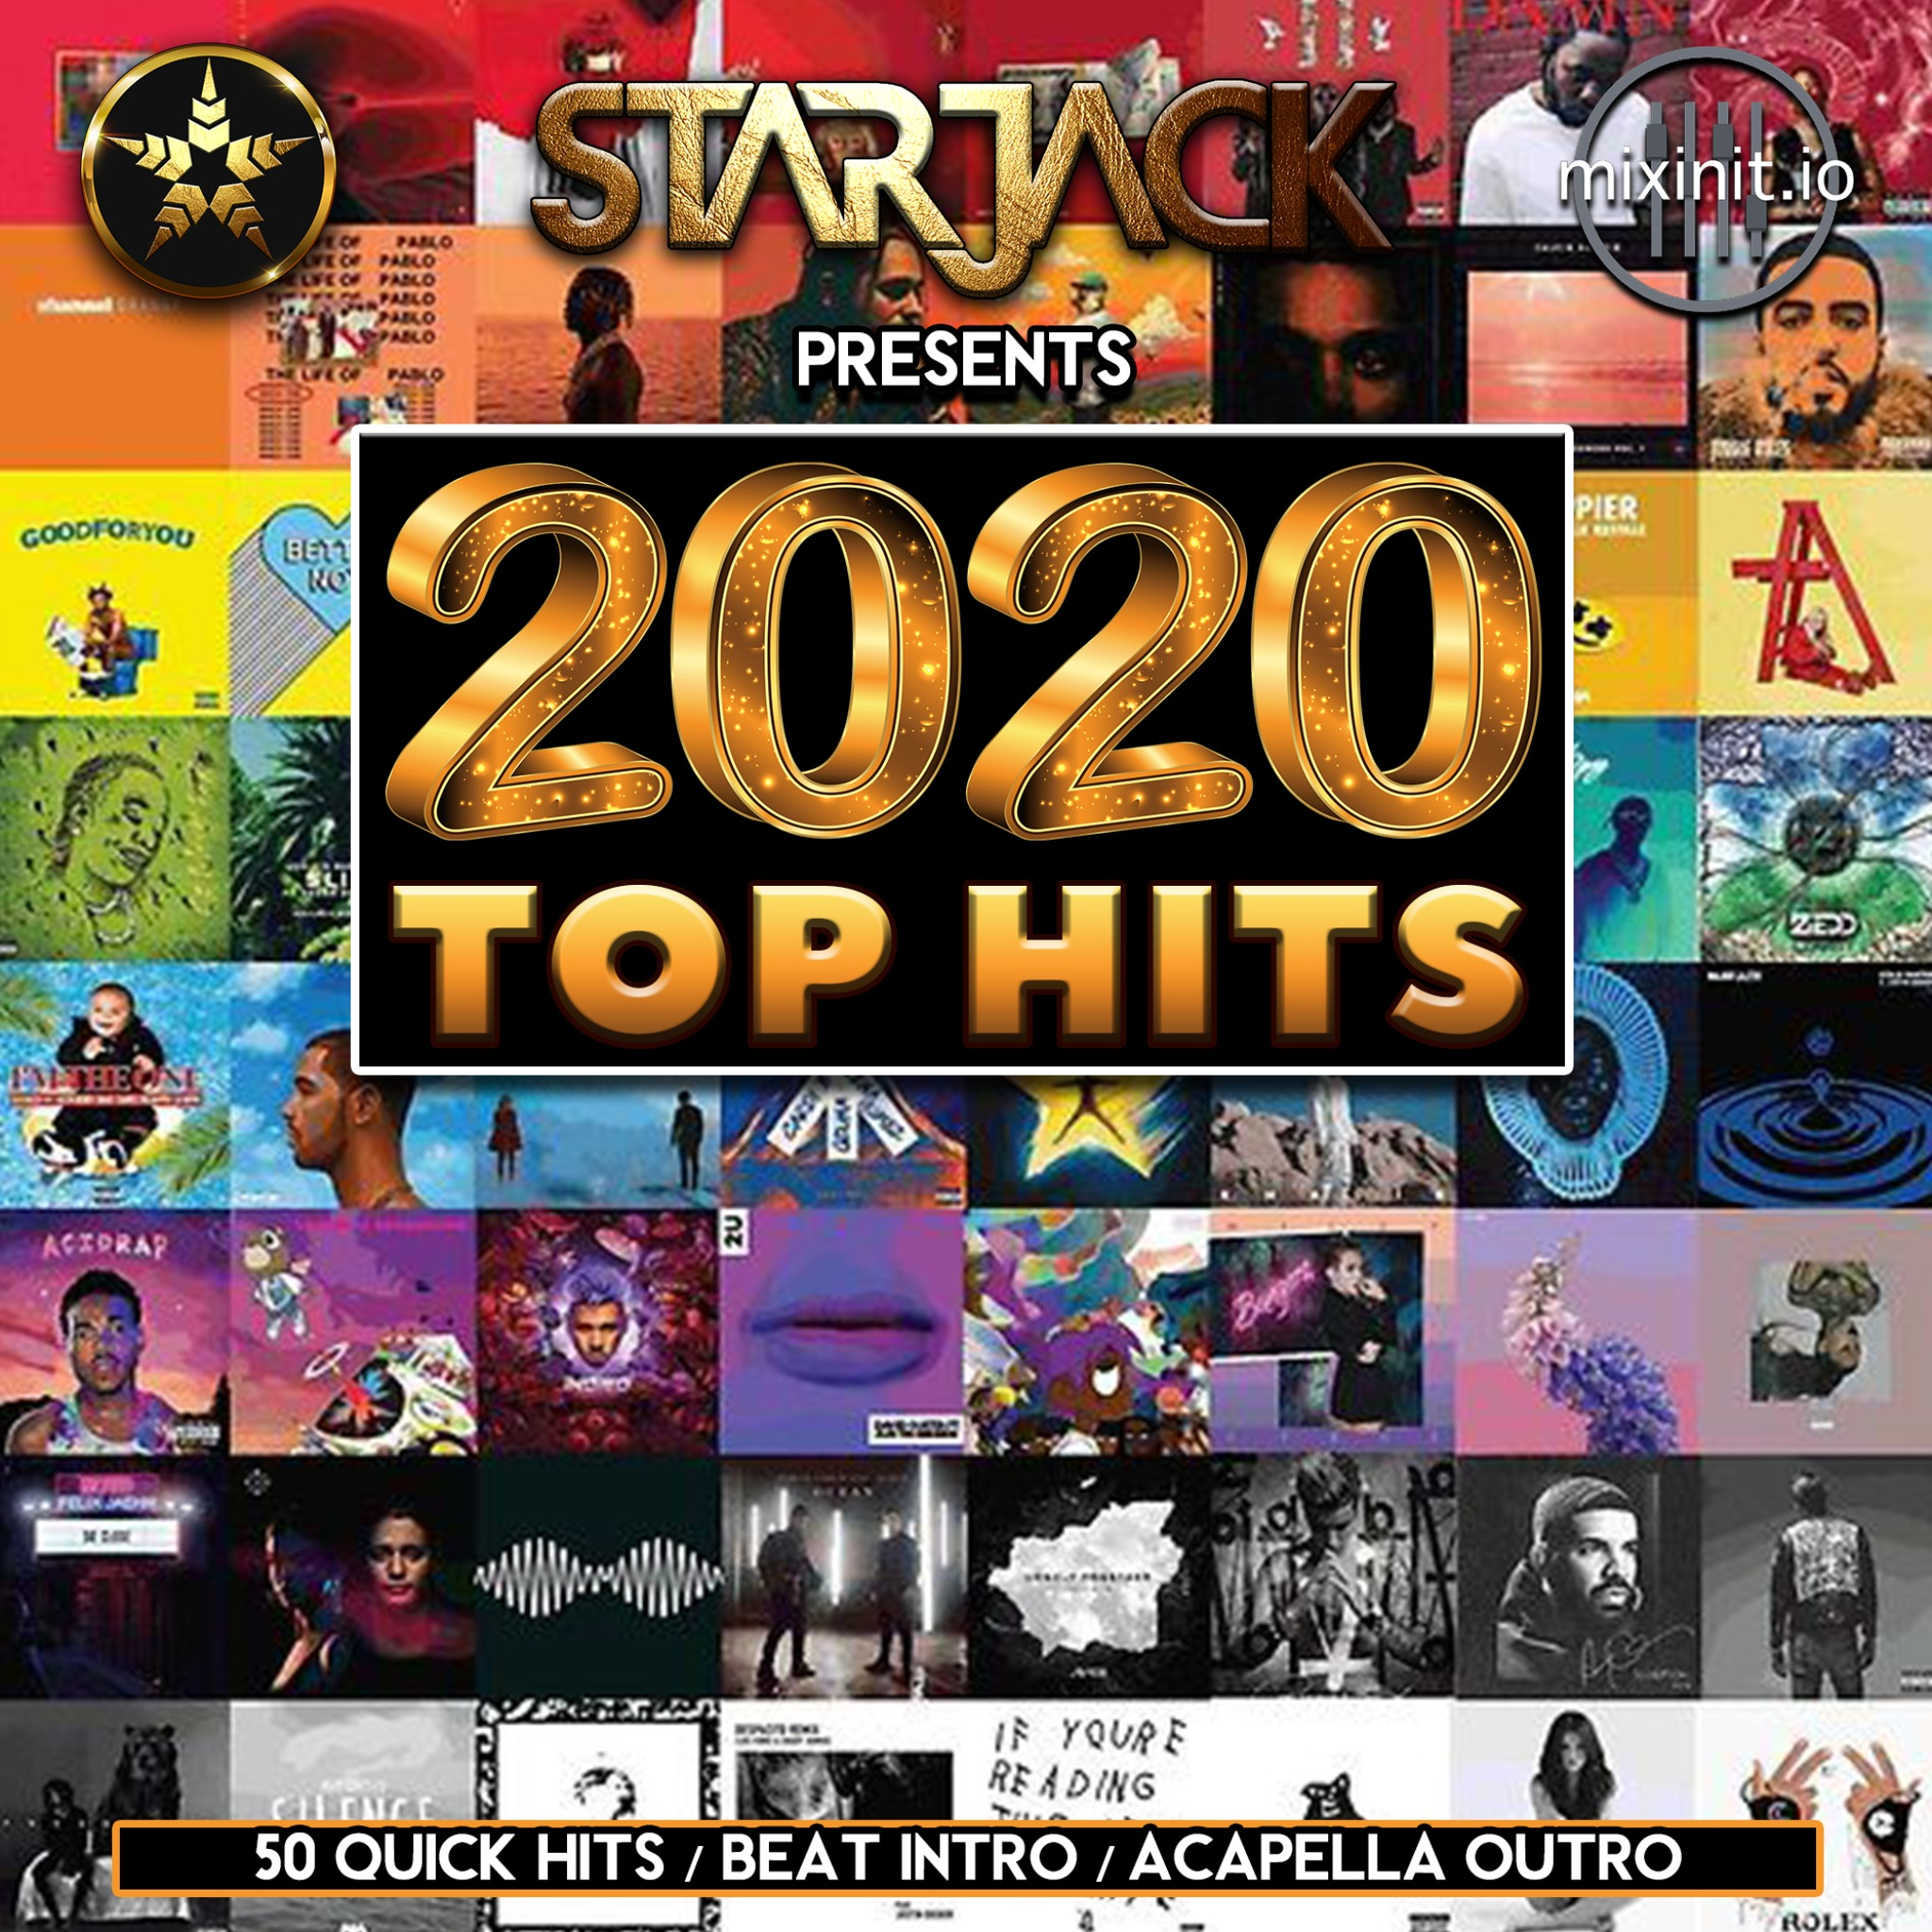 Starjack - Top Hits Of 2020 (50 Quick Hit Acapella Outs)